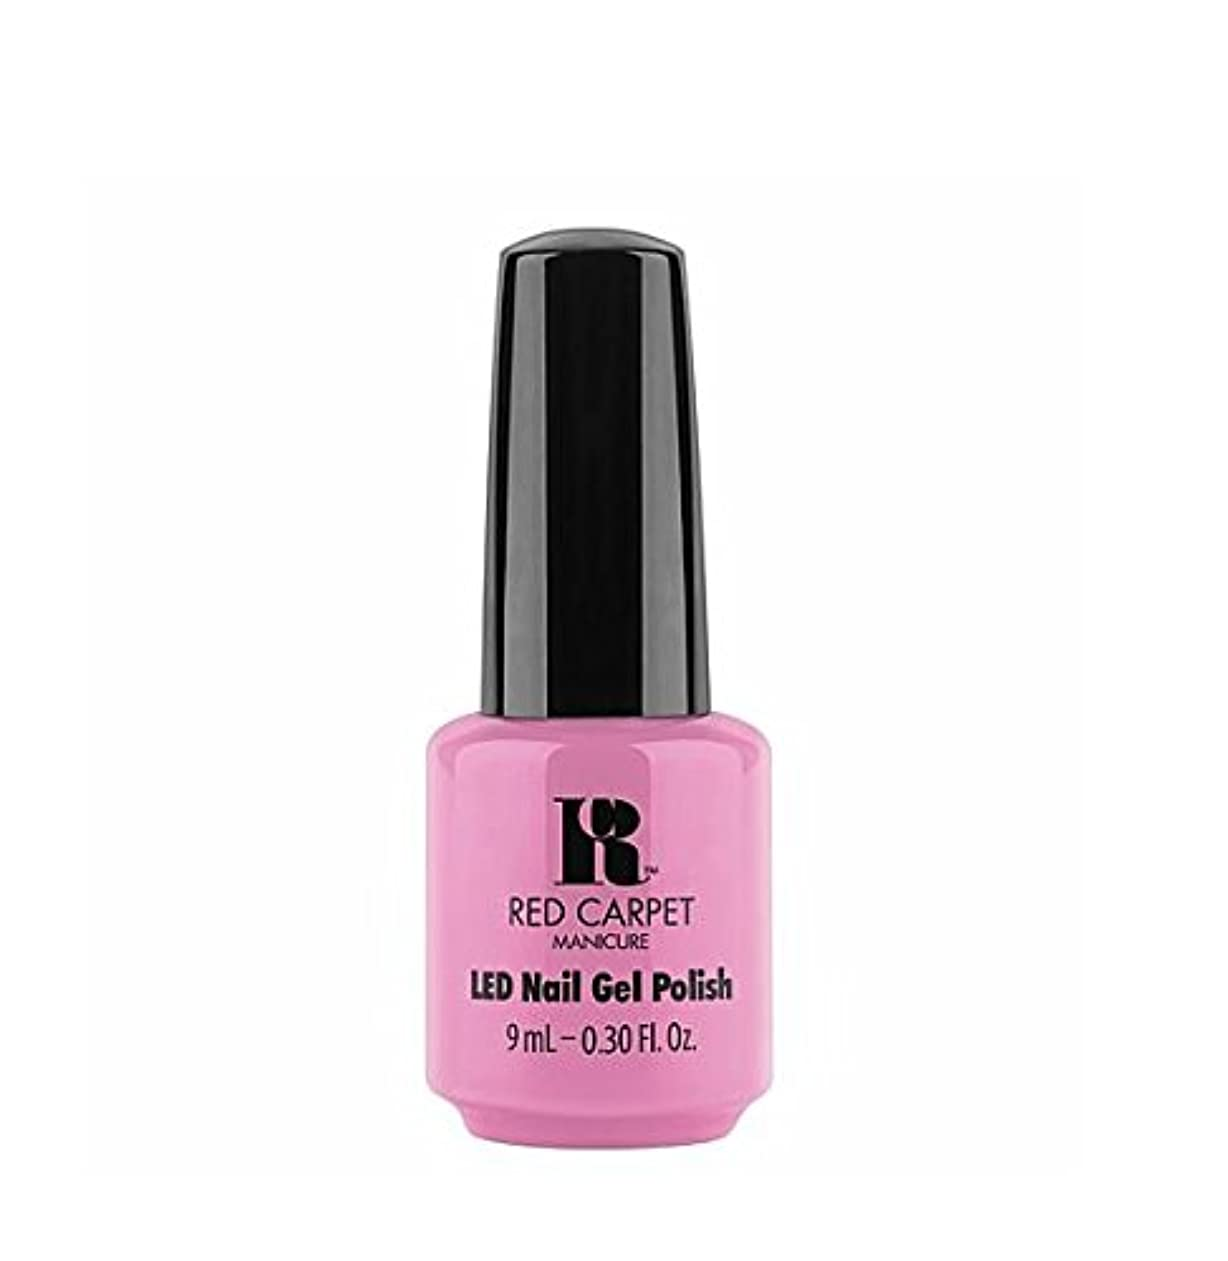 申し込む原点ピアースRed Carpet Manicure LED Gel Polish - Platform Pop - 9 ml / 0.30 oz